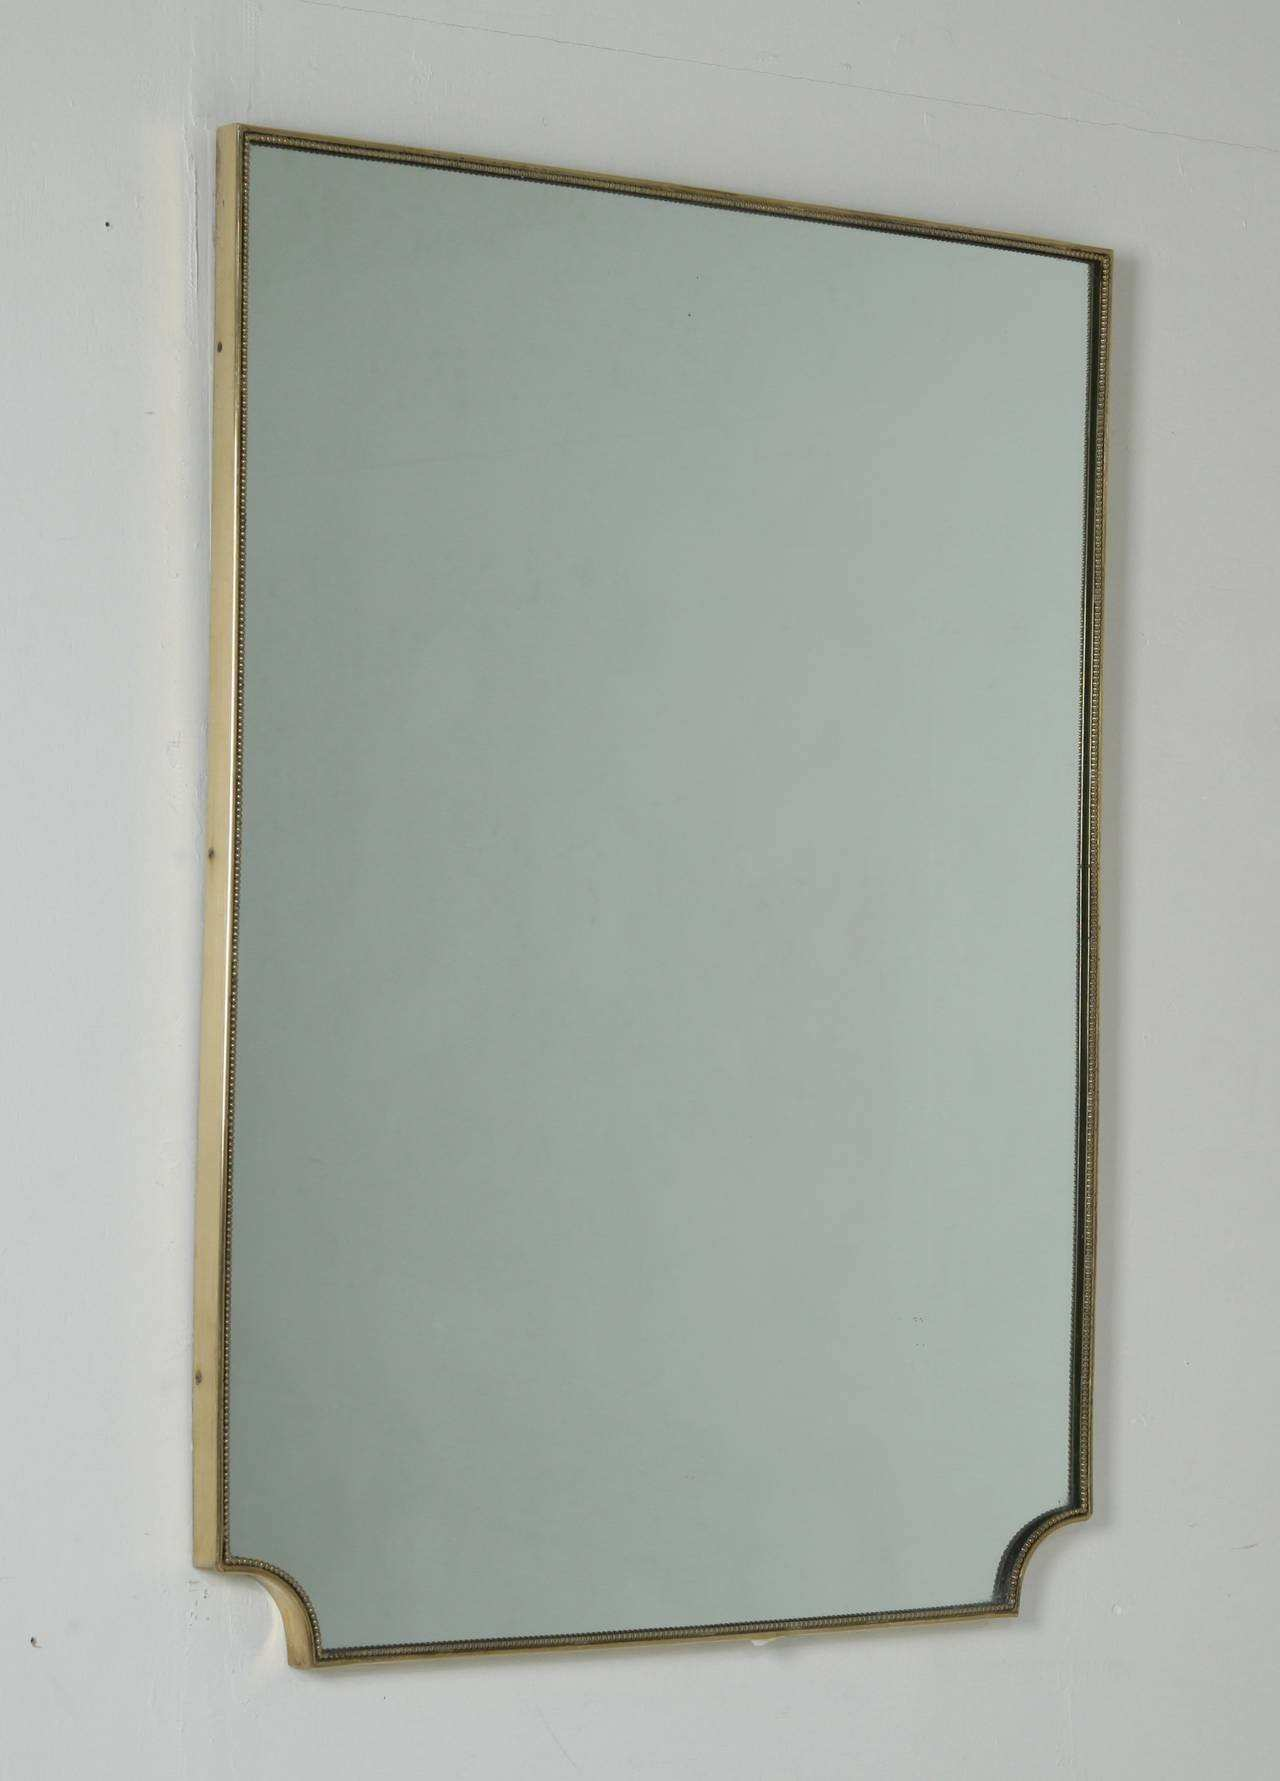 Small Framed Mirrors Popular Altan Wooden Mirror In Dark White Wood